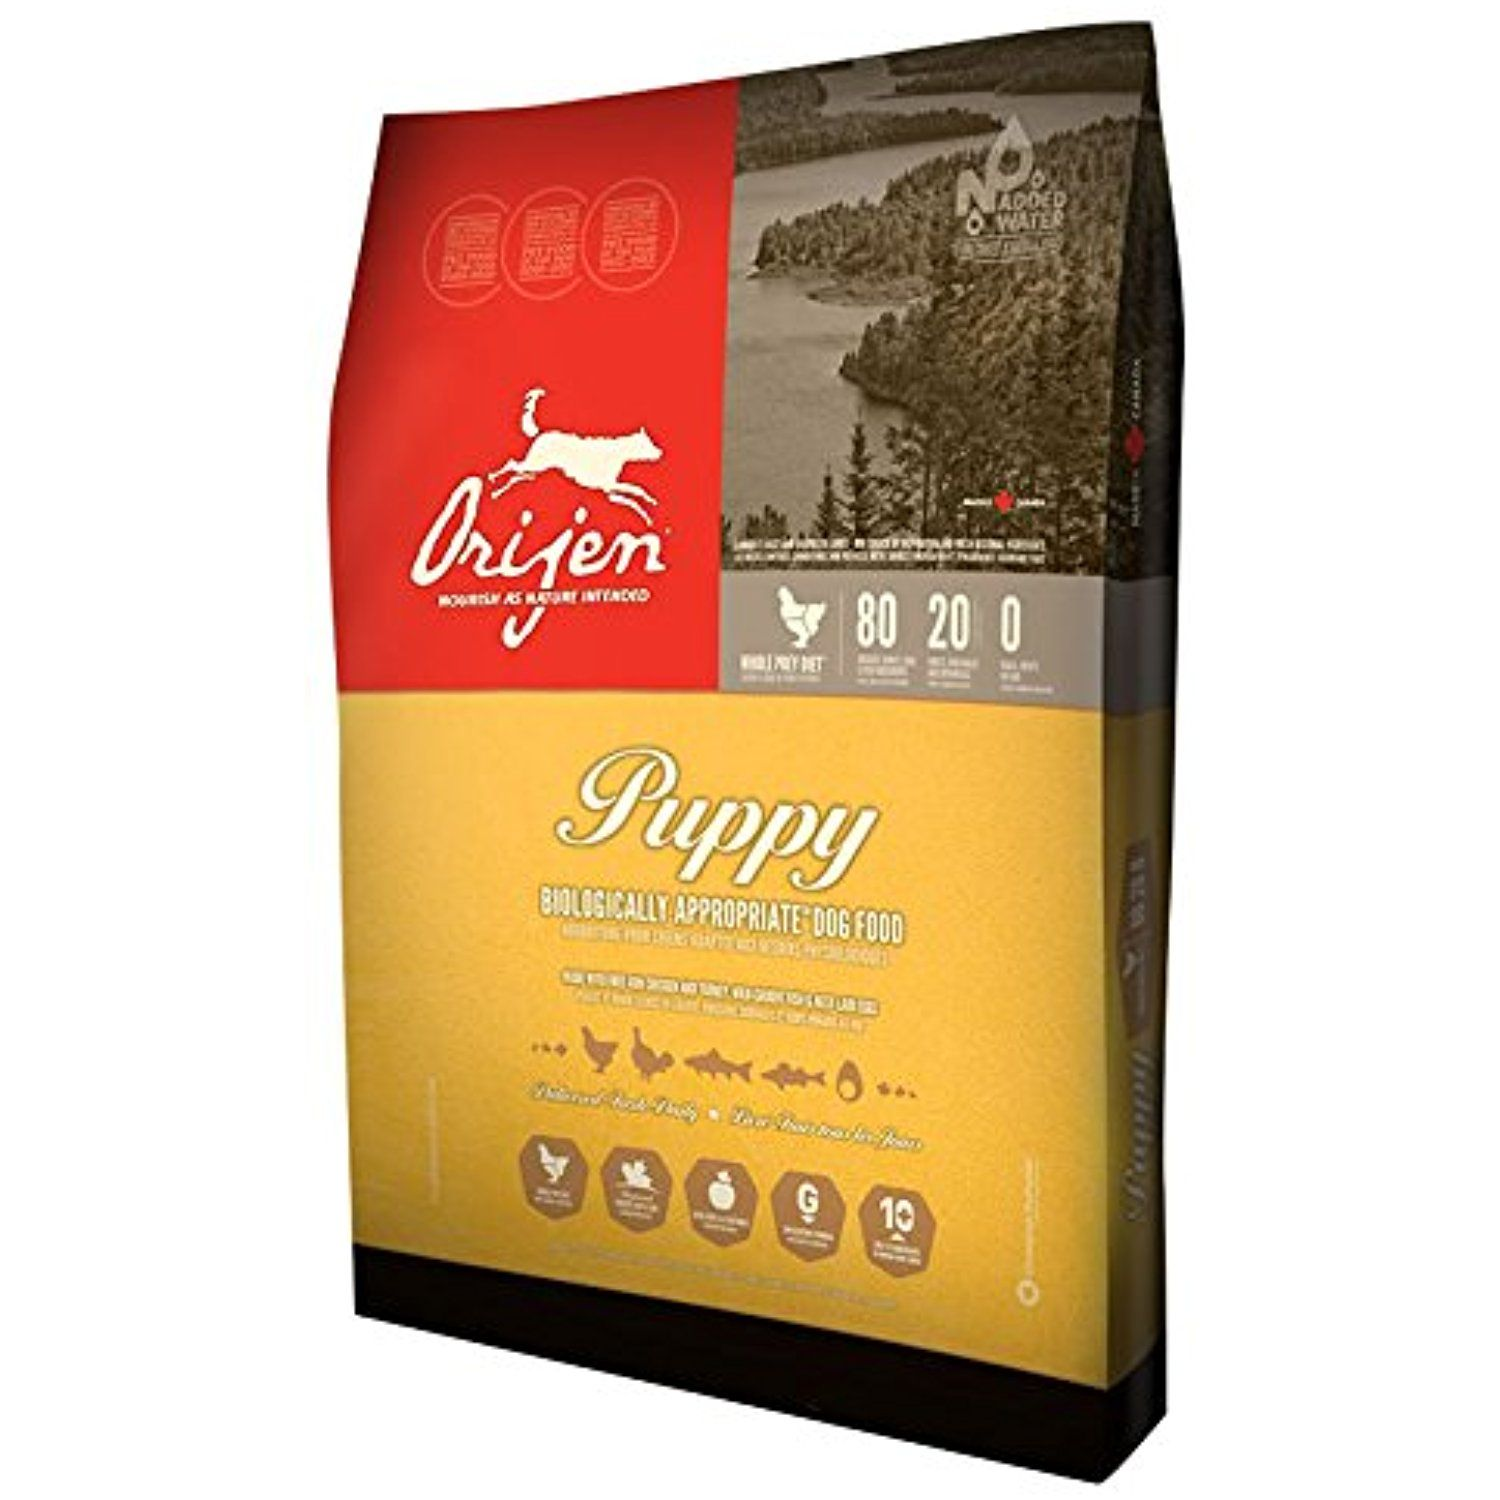 Orijen Puppy Formula Dry Dog Food 28.6lb bag You can